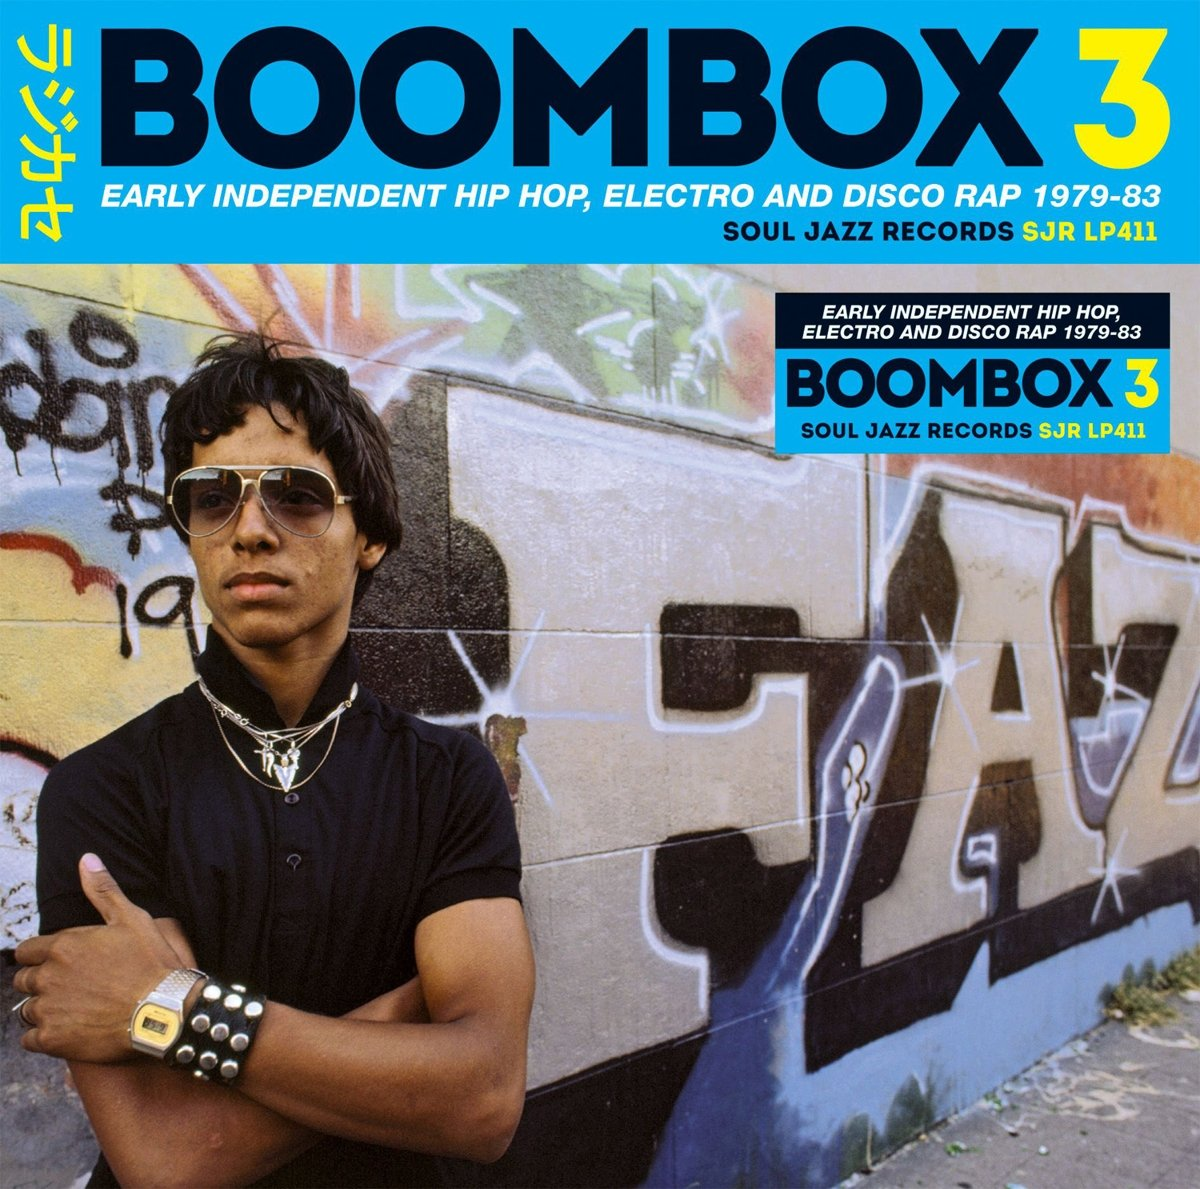 CD : Soul Jazz Records Presents - Soul Jazz Records Presents Boombox 3: Early Independent Hip Hop (With Booklet, 2PC)